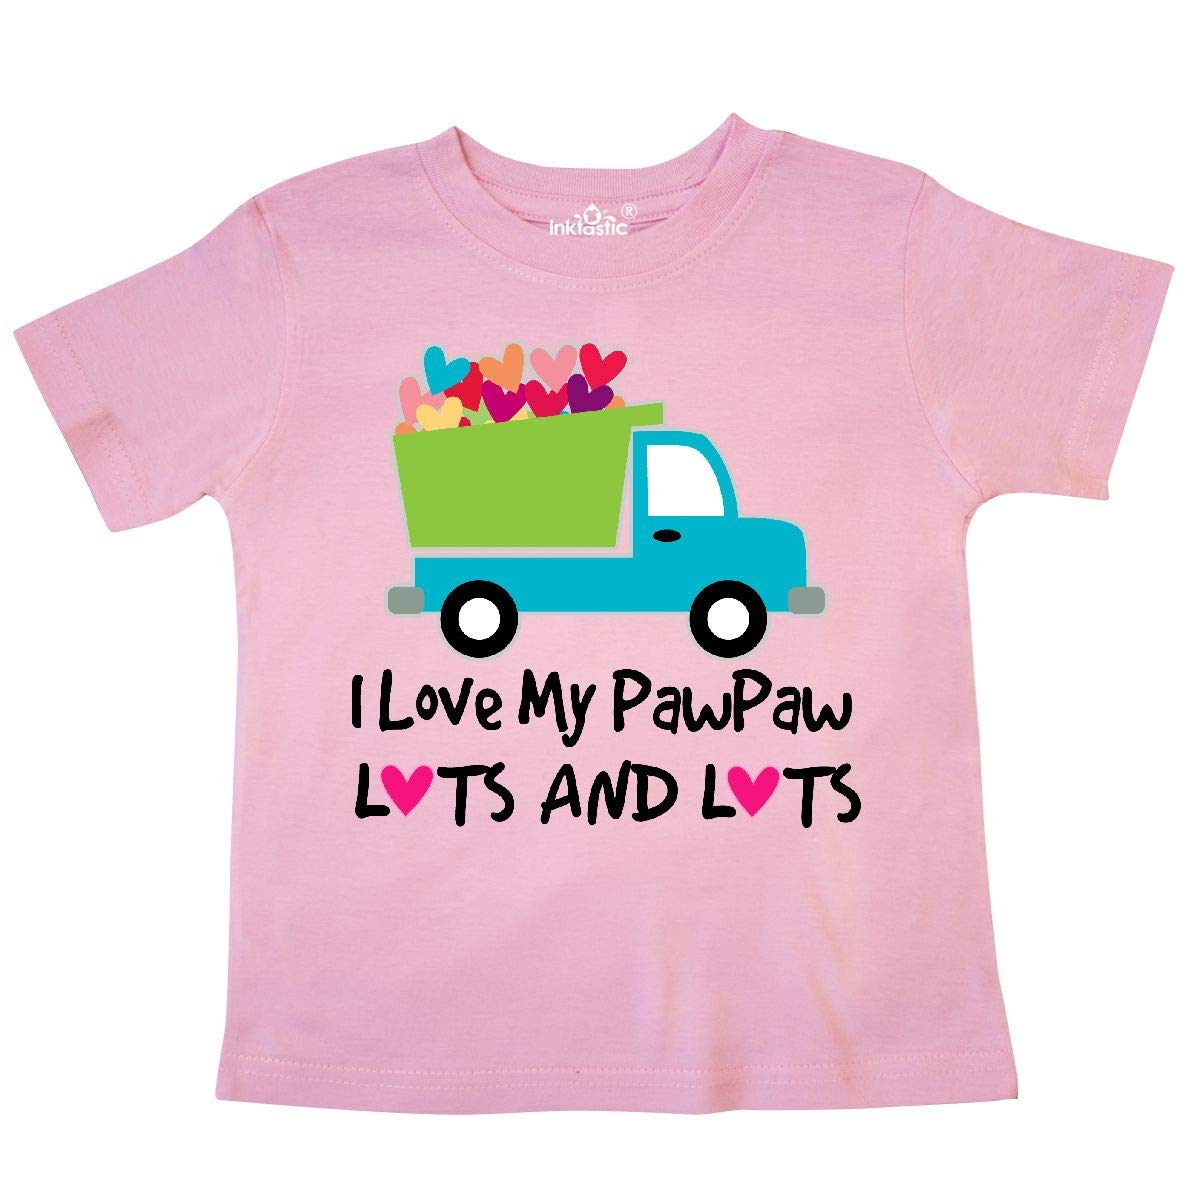 7d942af35 Amazon.com: inktastic - I Love My Pawpaw Toddler T-Shirt 236d2: Clothing